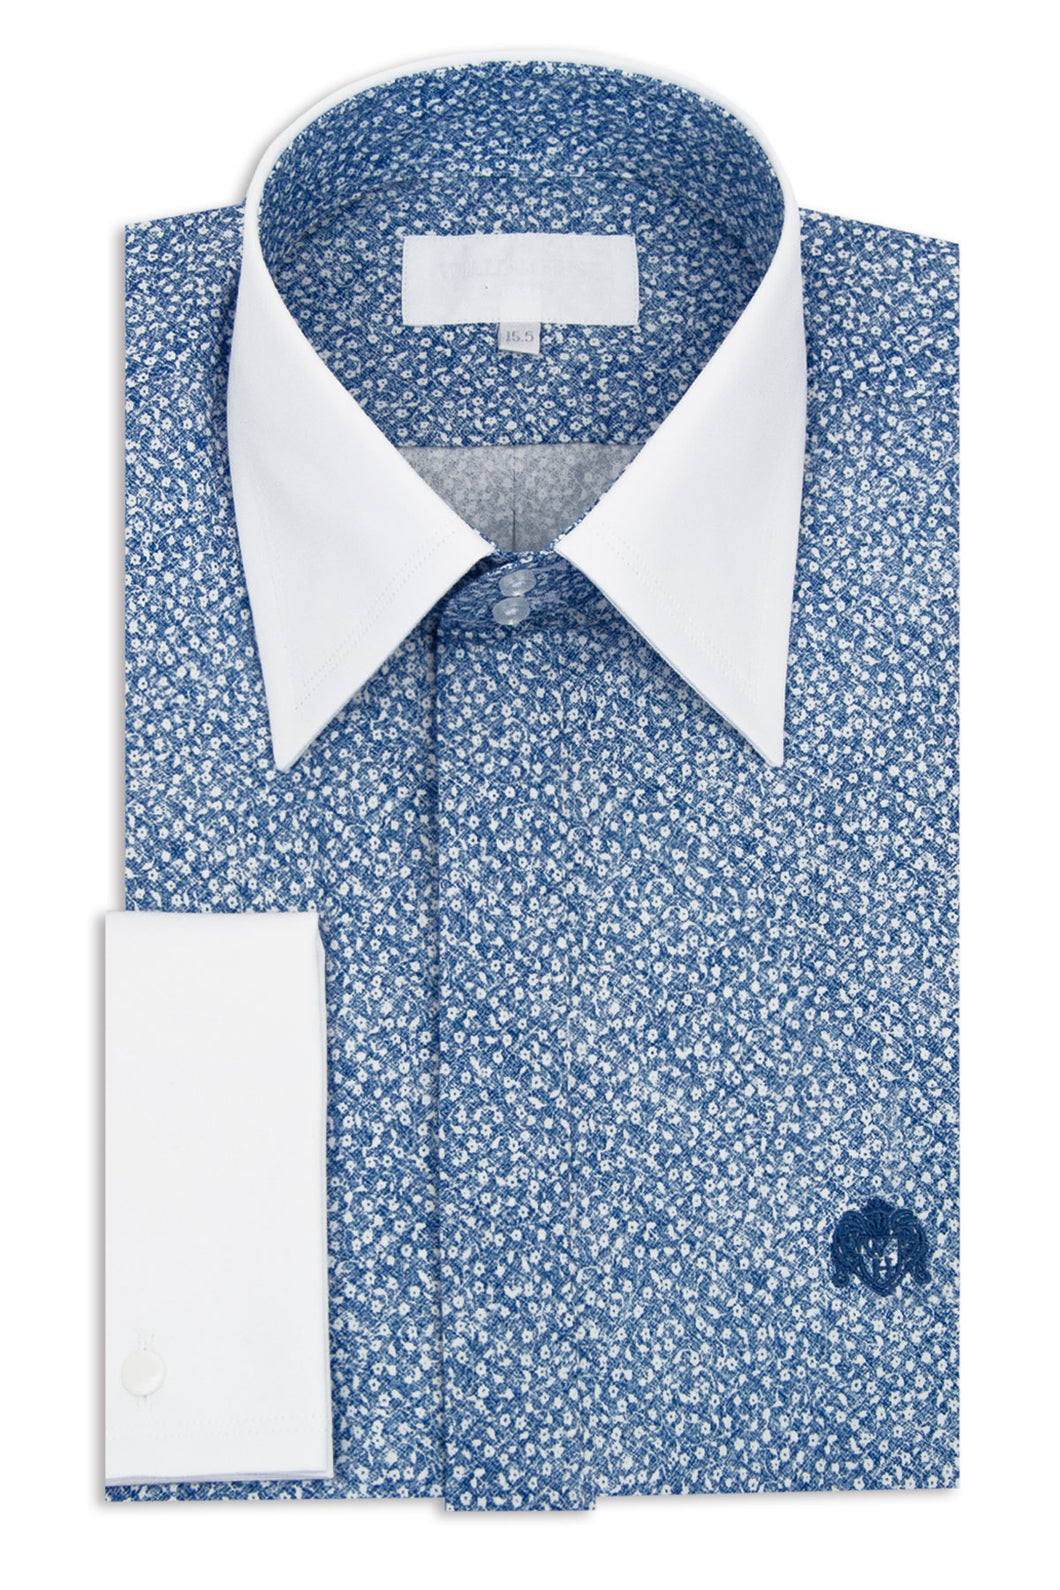 Blue with White Floral Pattern Forward Point Collar Shirt